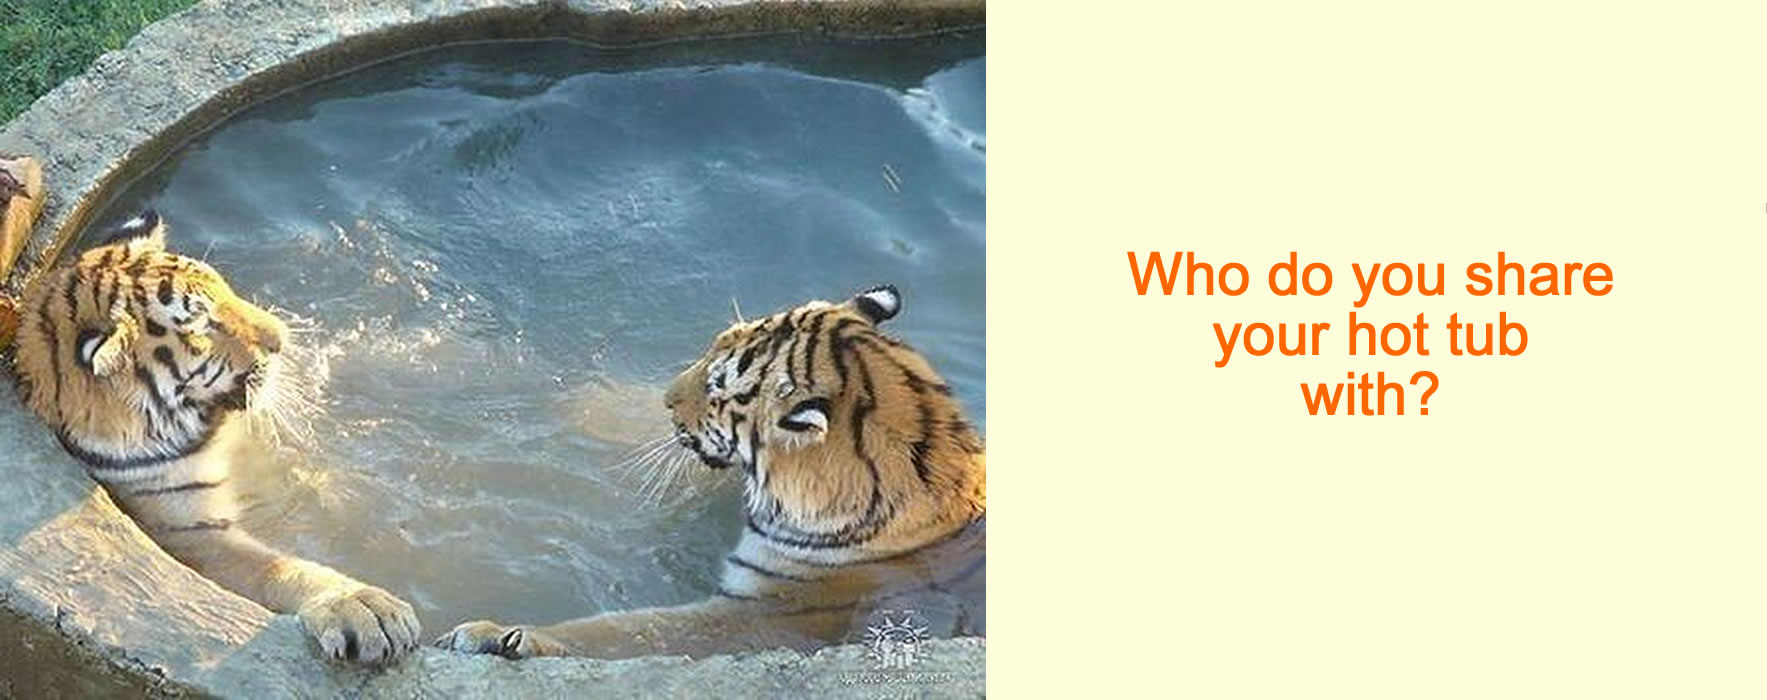 Who do you share your hot tub with?